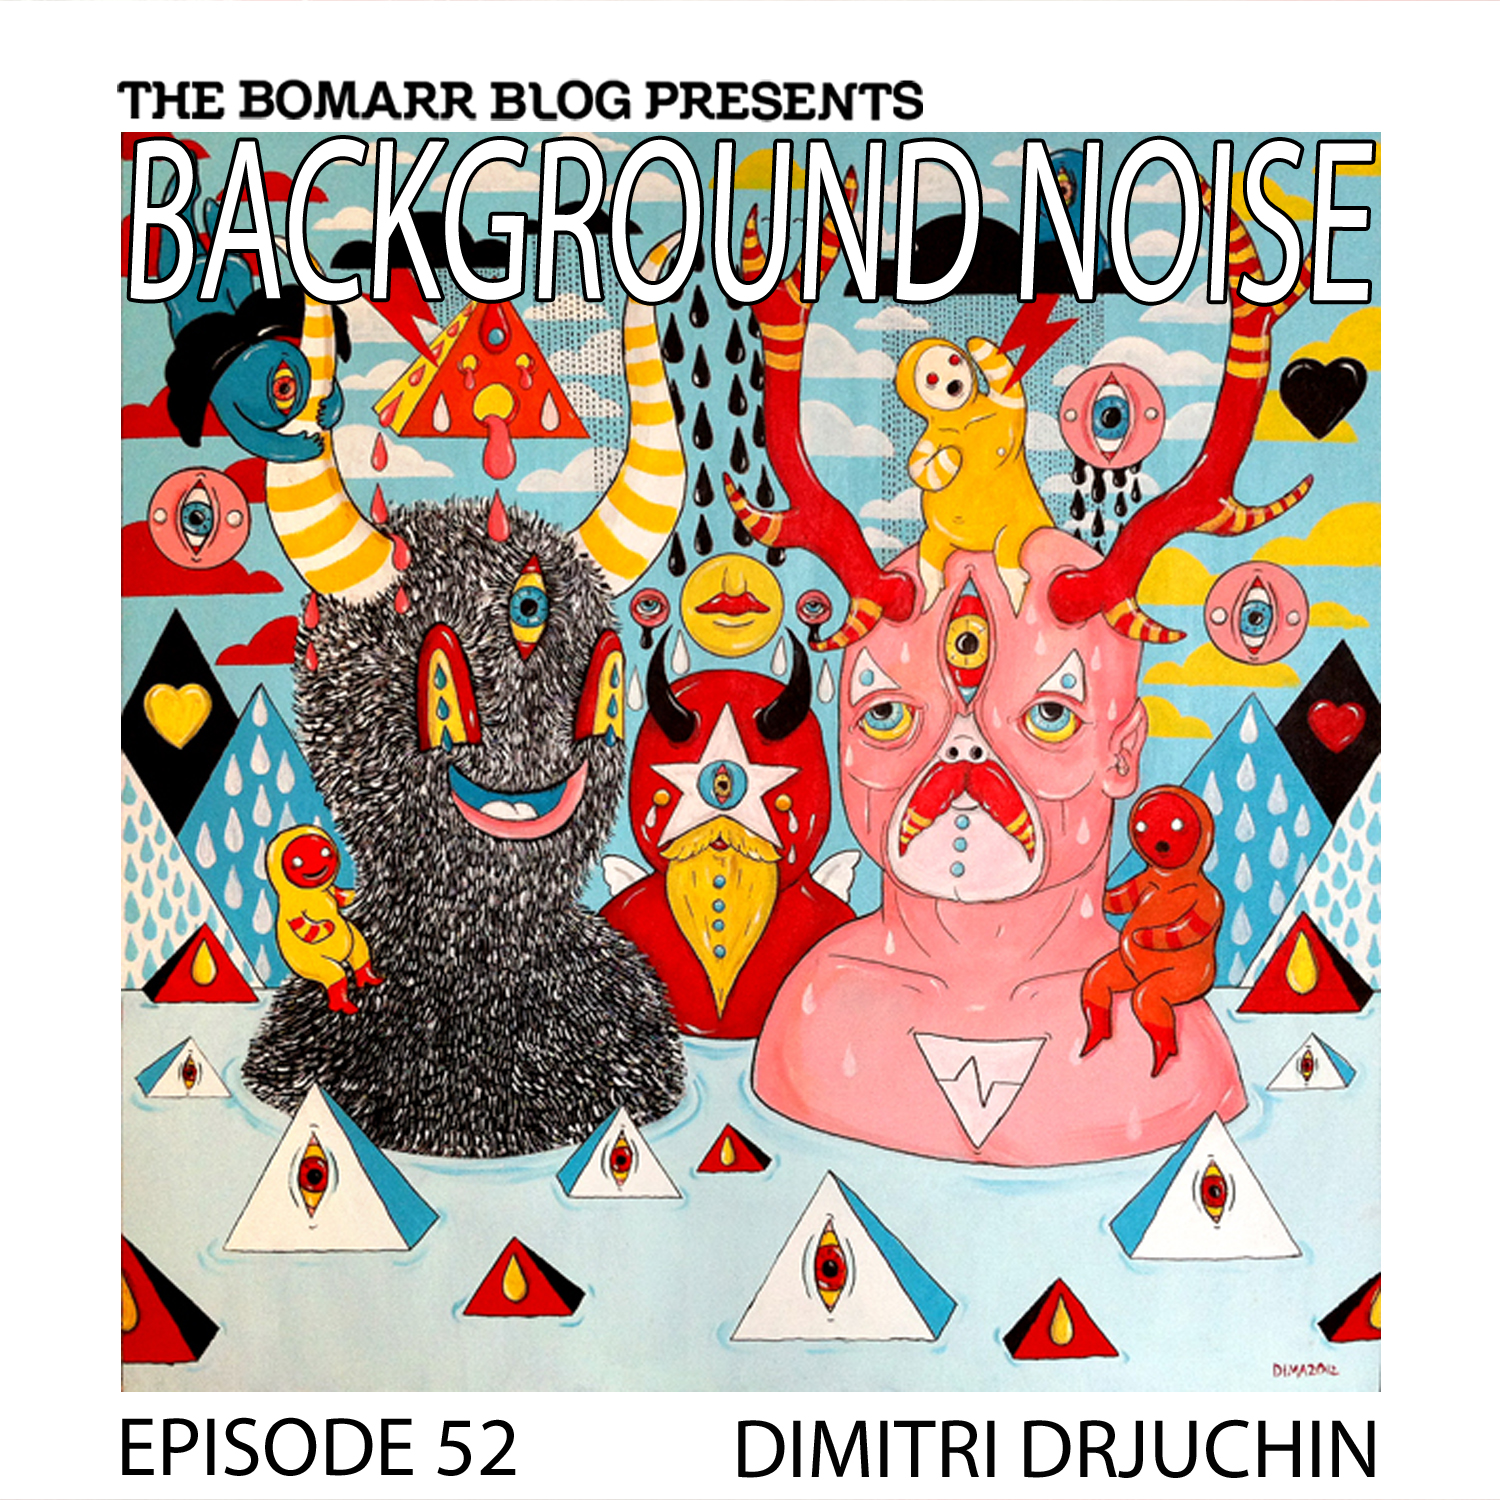 THE BACKGROUND NOISE PODCAST SERIES FOCUSES ON THE MUSIC THAT ARTISTS LISTEN TO WHEN THEY WORK, WHAT MUSIC INSPIRES THEM, OR JUST MUSIC THEY LIKE. THIS WEEK, IN EPISODE 52, THE FOCUS IS ON DIMITRI DRJUCHIN